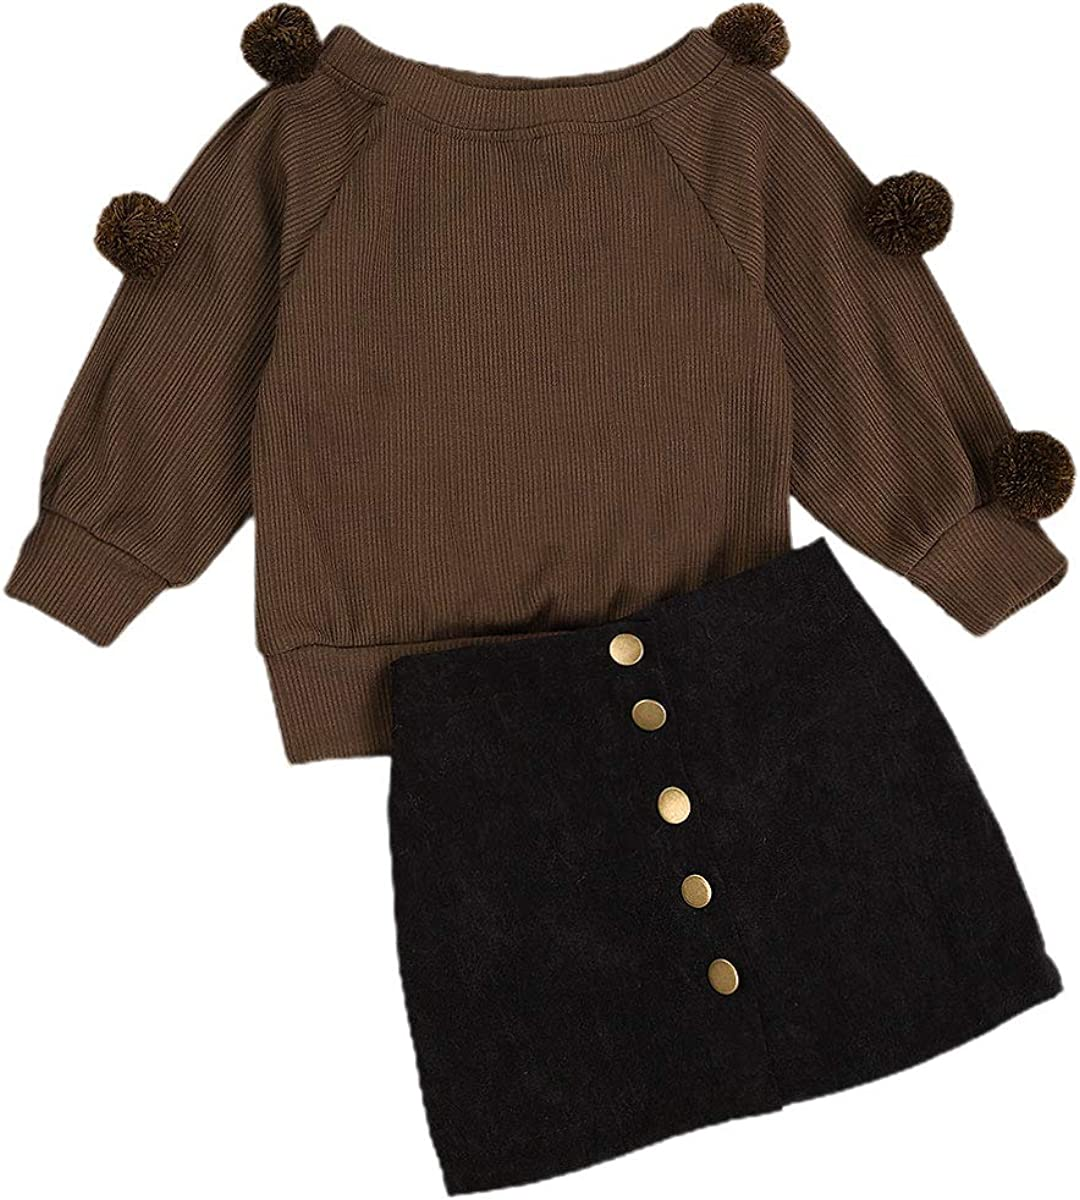 Xuuly Toddler Baby Girl Skirt Outfit Long Sleeve Solid Color Knit T-Shirt Top +Mini Skirt Dress Fall Winter 2Pcs Clothes Set